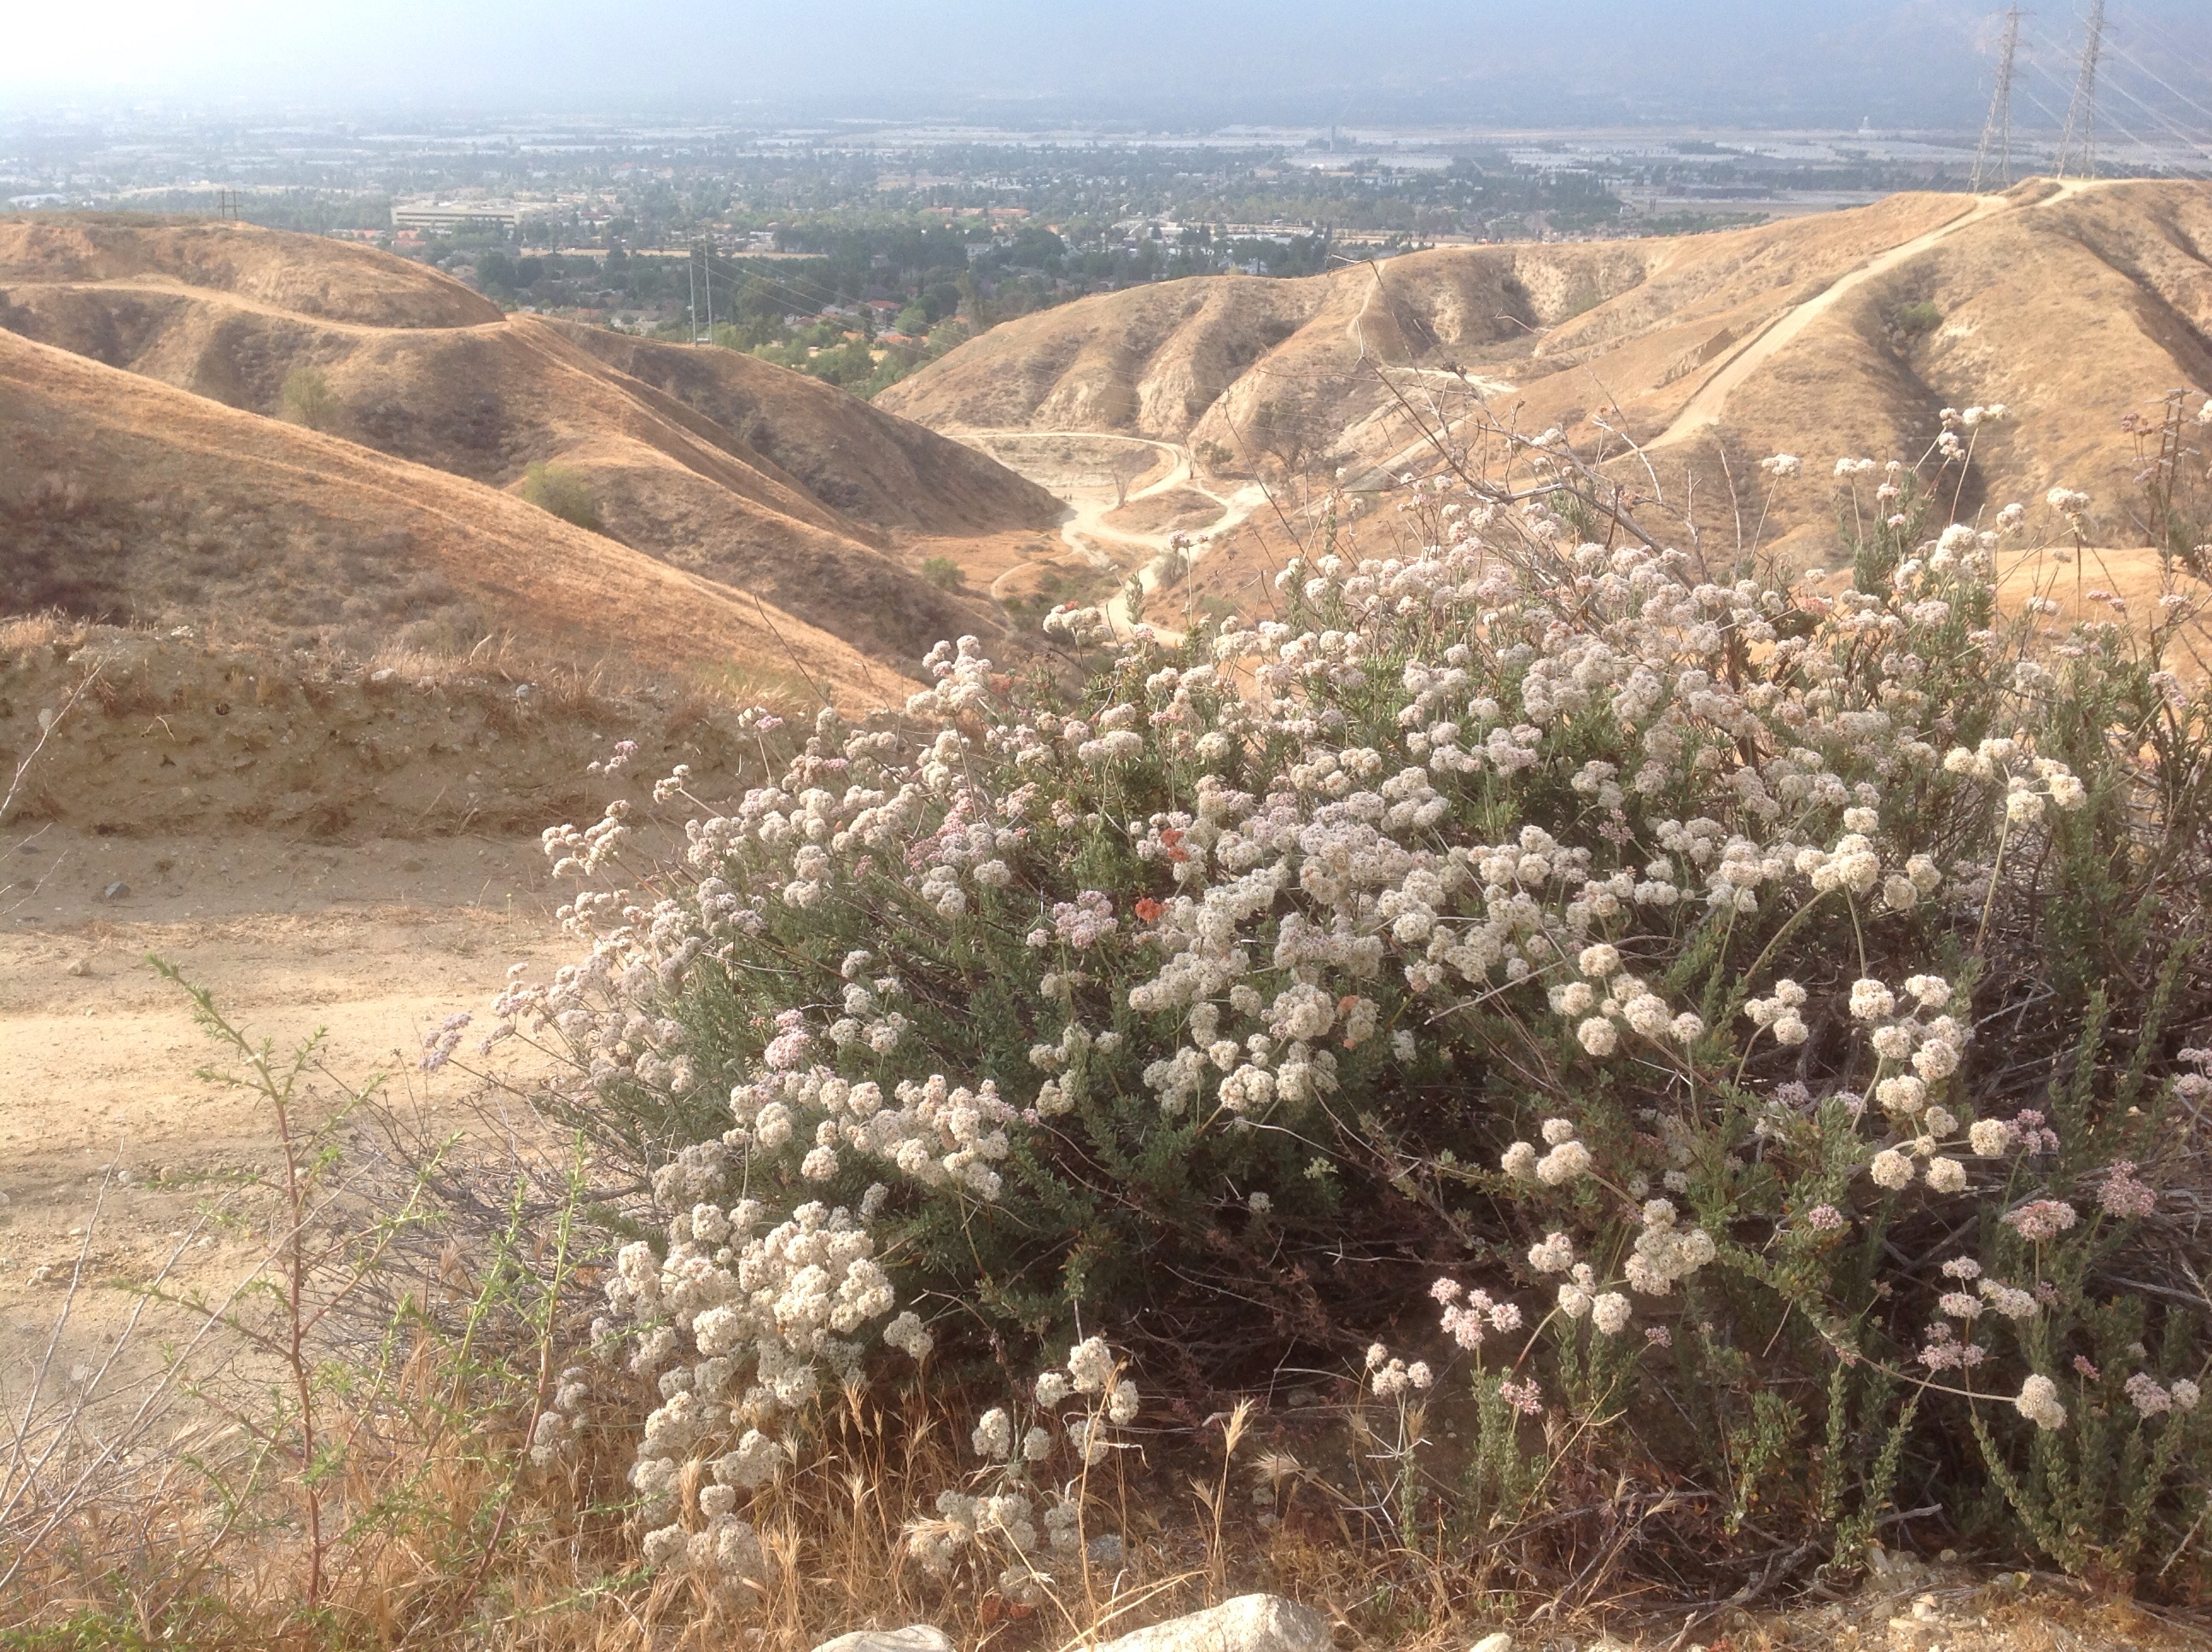 After paying homage to Hulda Crooks, I continued my three-hour hike in the  dusty hills above the park, ...